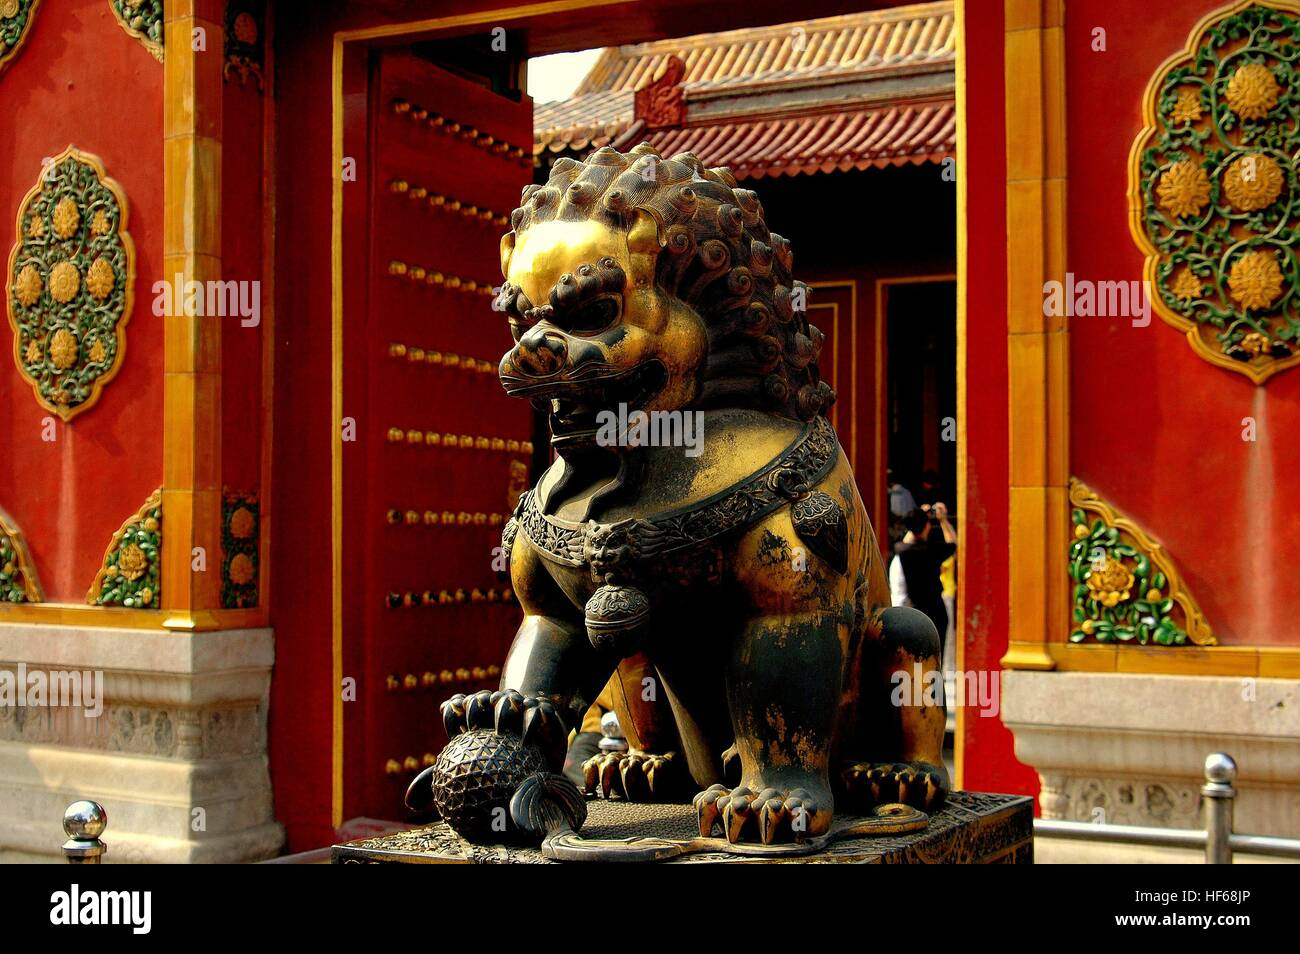 Beijing, China - May 2, 2005:  A gilded bronze lion guards an entry gate at the Chang Chung Palace in the Forbidden - Stock Image